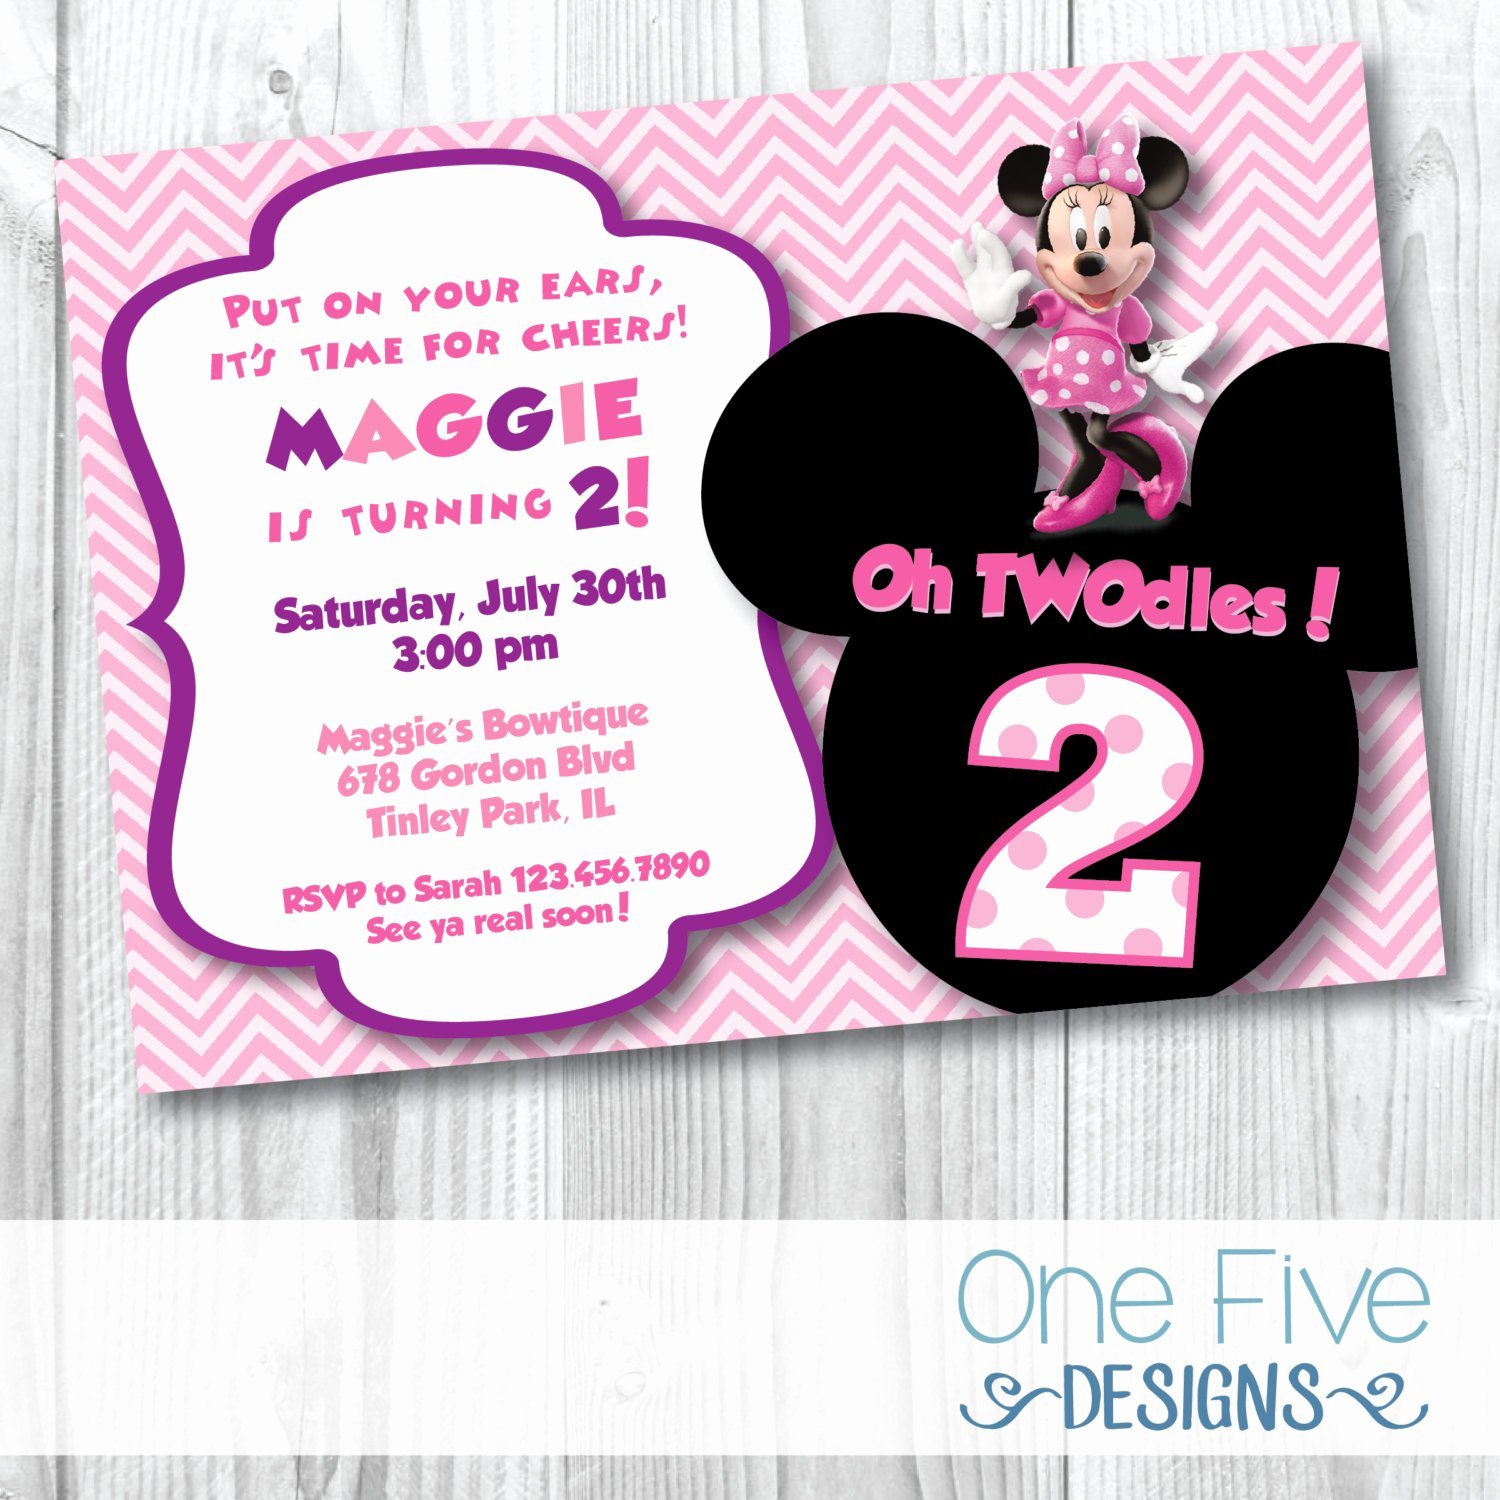 Minnie Mouse Birthday Party Invitations New Minnie Mouse Oh Twodles Birthday Party Invitation